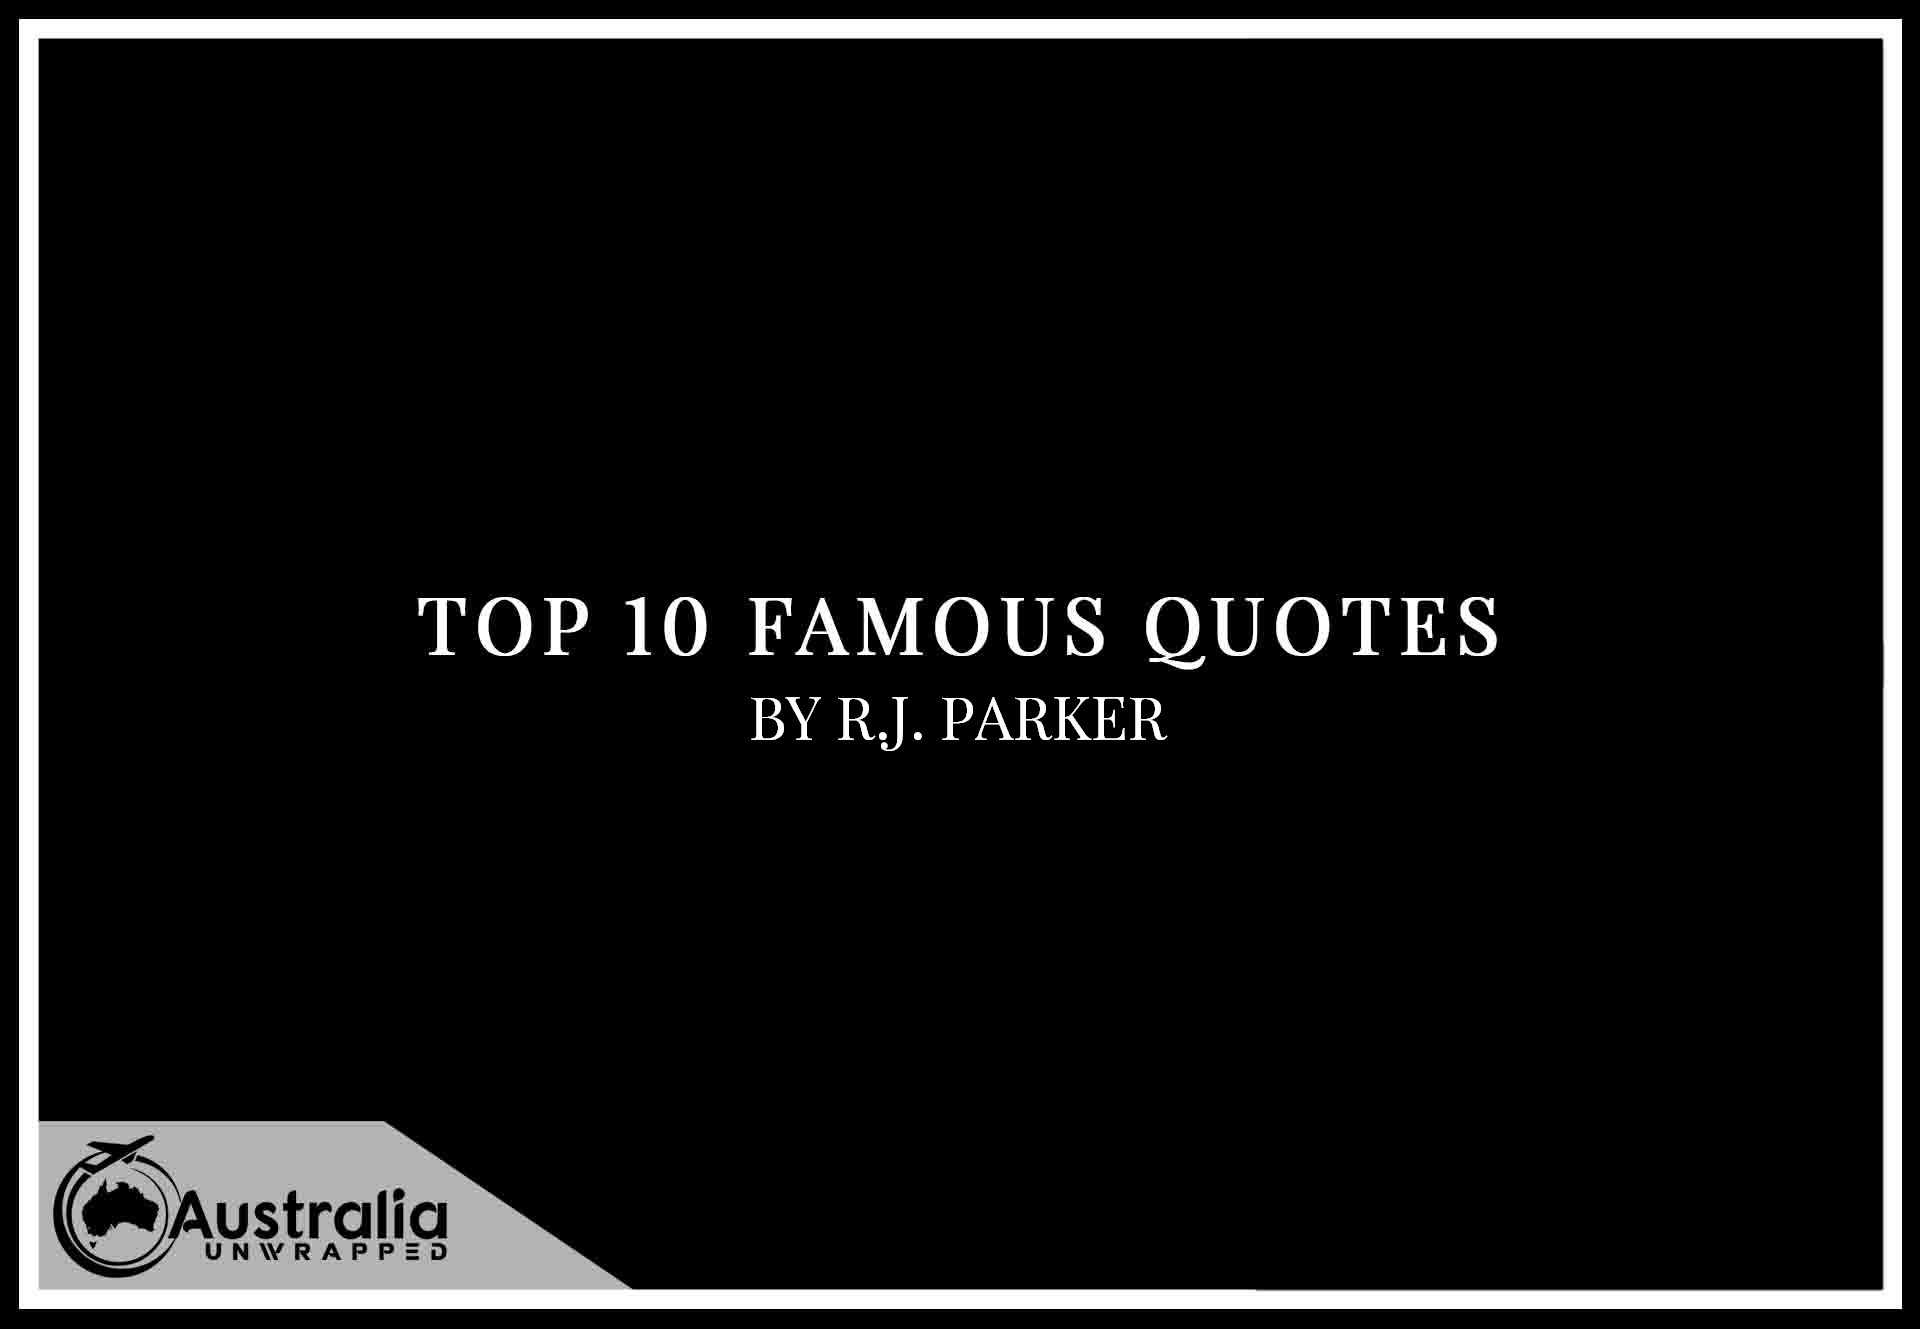 Top 10 Famous Quotes by Author R.J. Parker